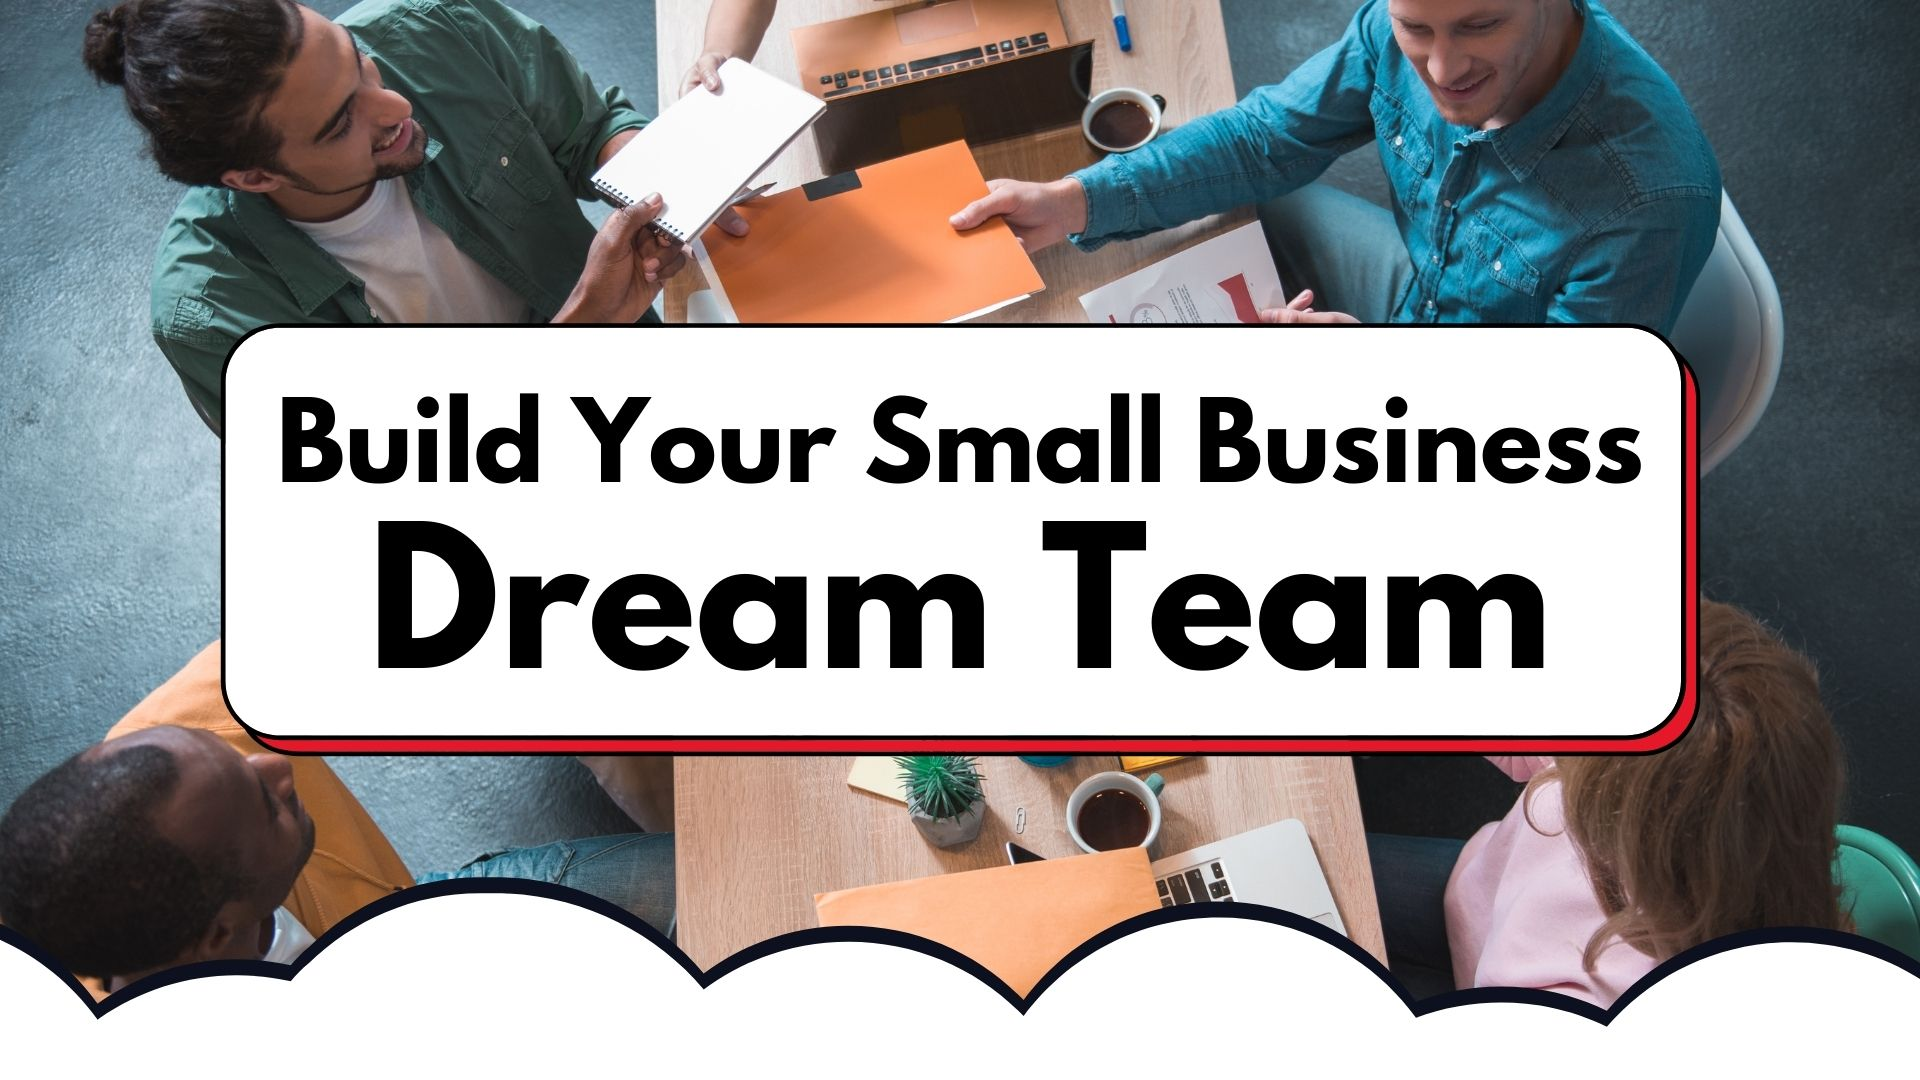 team building, employee, small business employee, startu hiring, hiring your team, hiring employees, small business hiring 2021, small business hiring, building your team